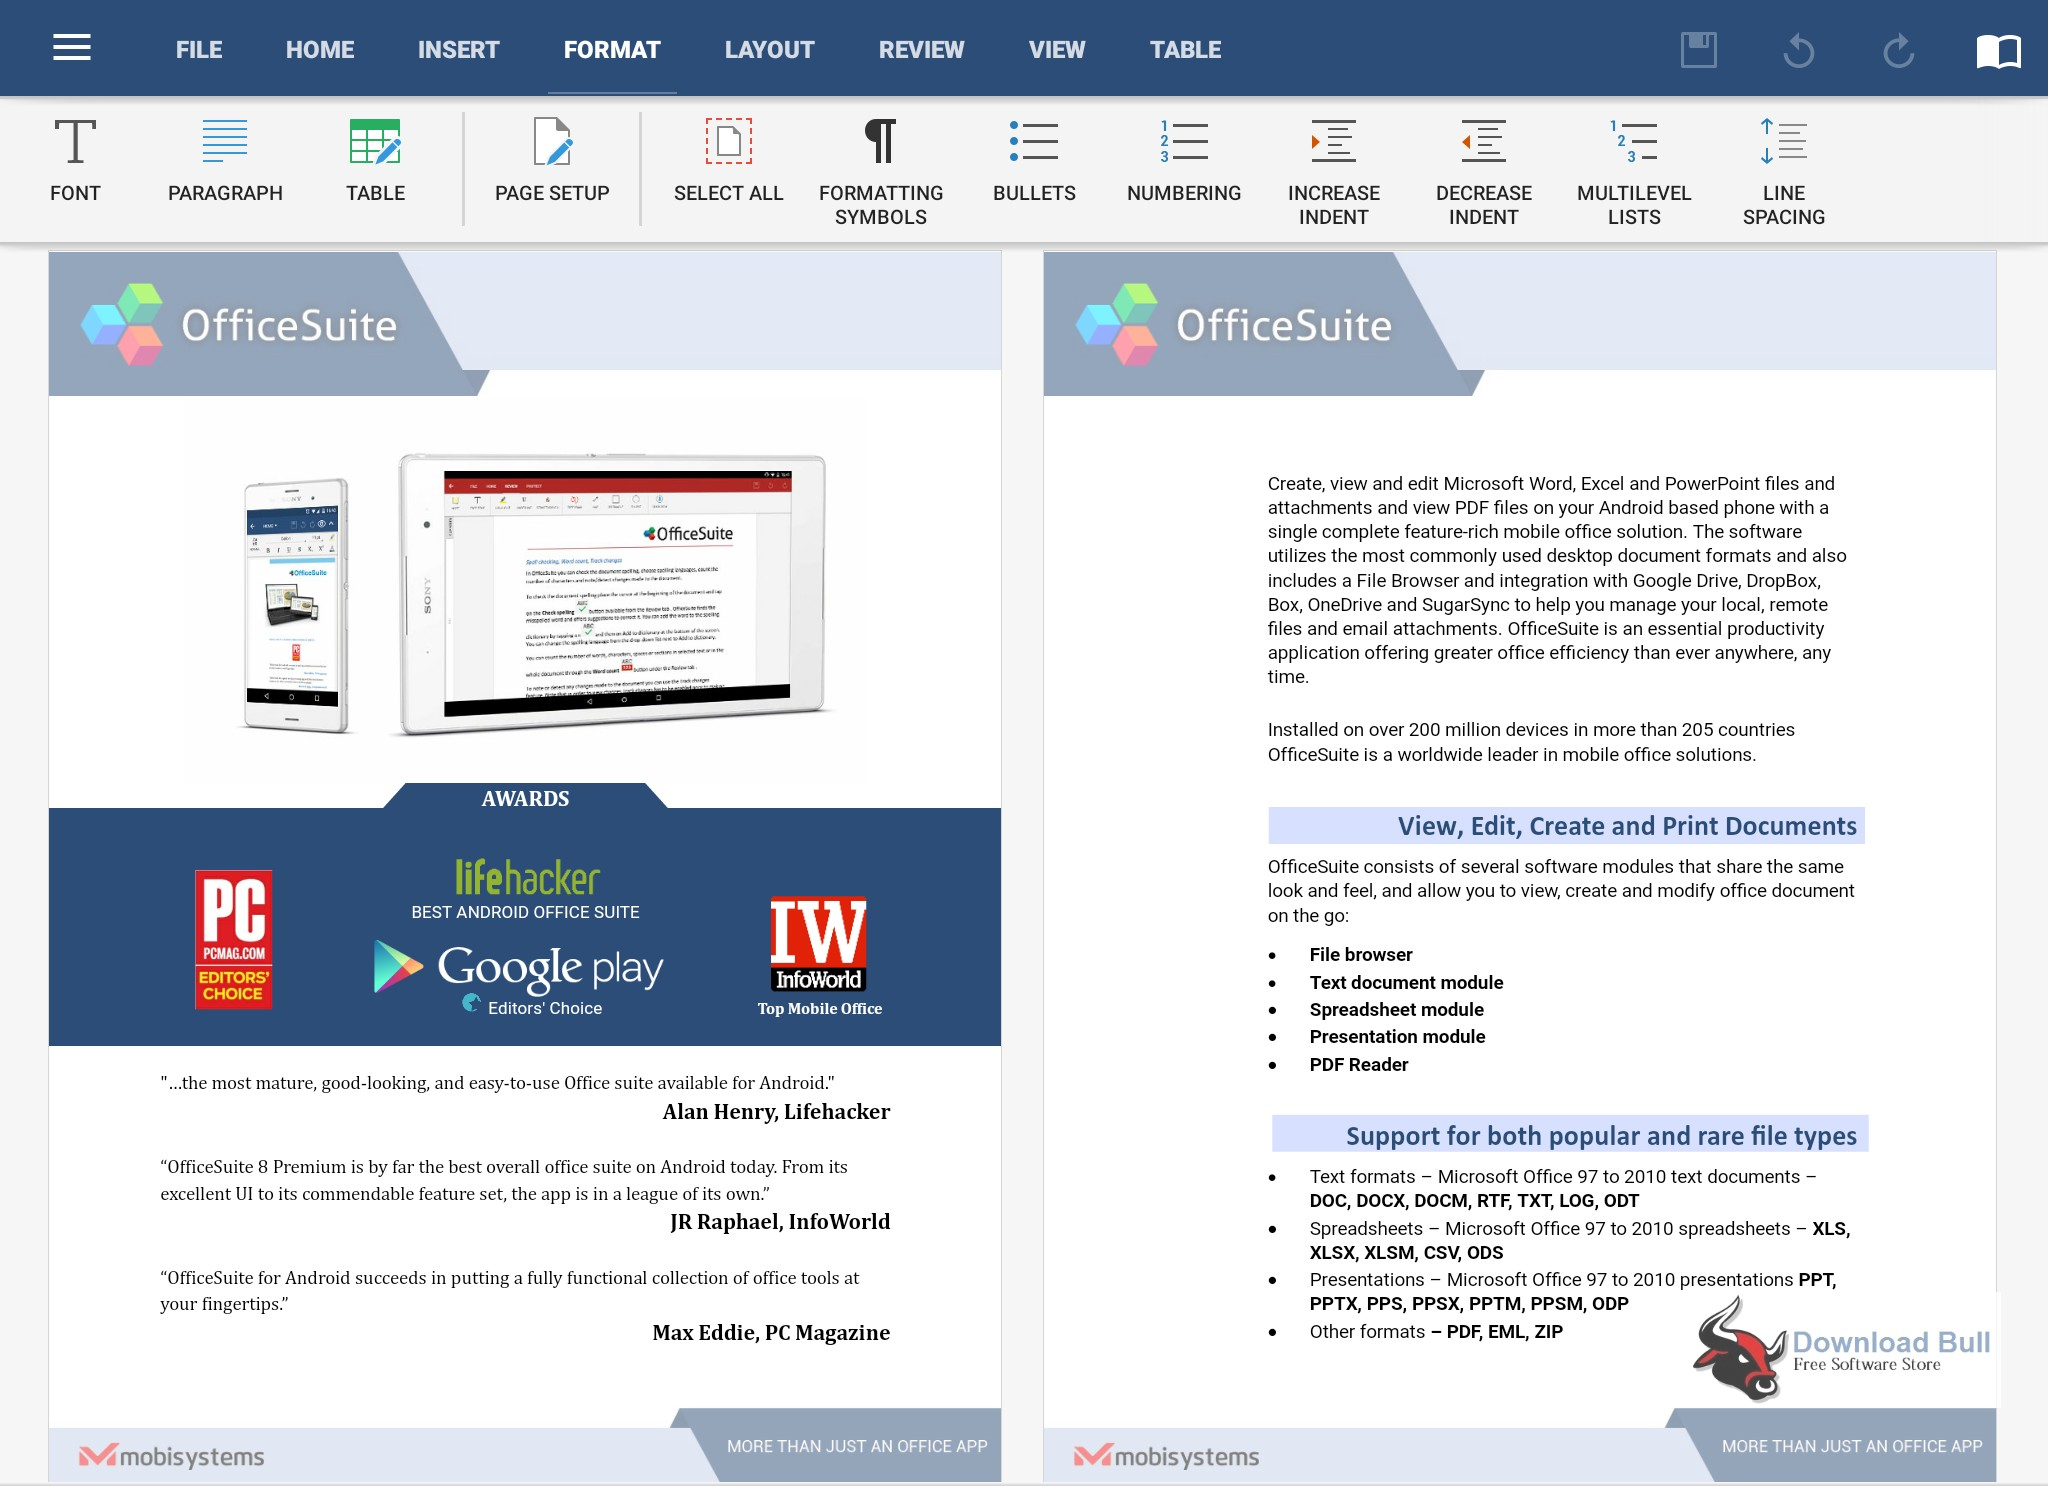 Portable MobiSystems OfficeSuite 2.7 Free Download